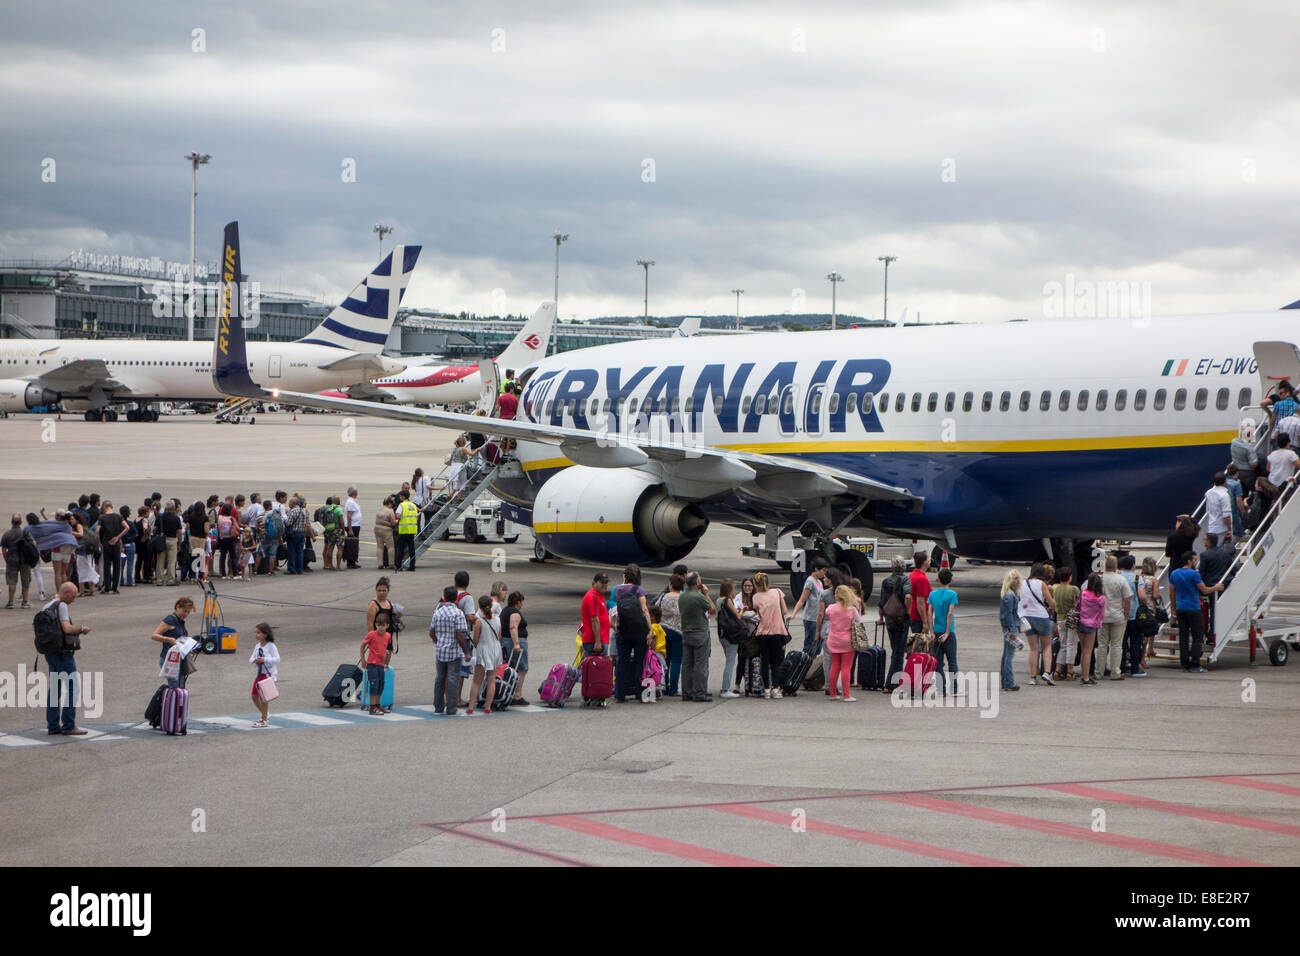 Berlin Schönefeld Ryanair Gate Passengers Boarding Plane And Airport Stock Photos